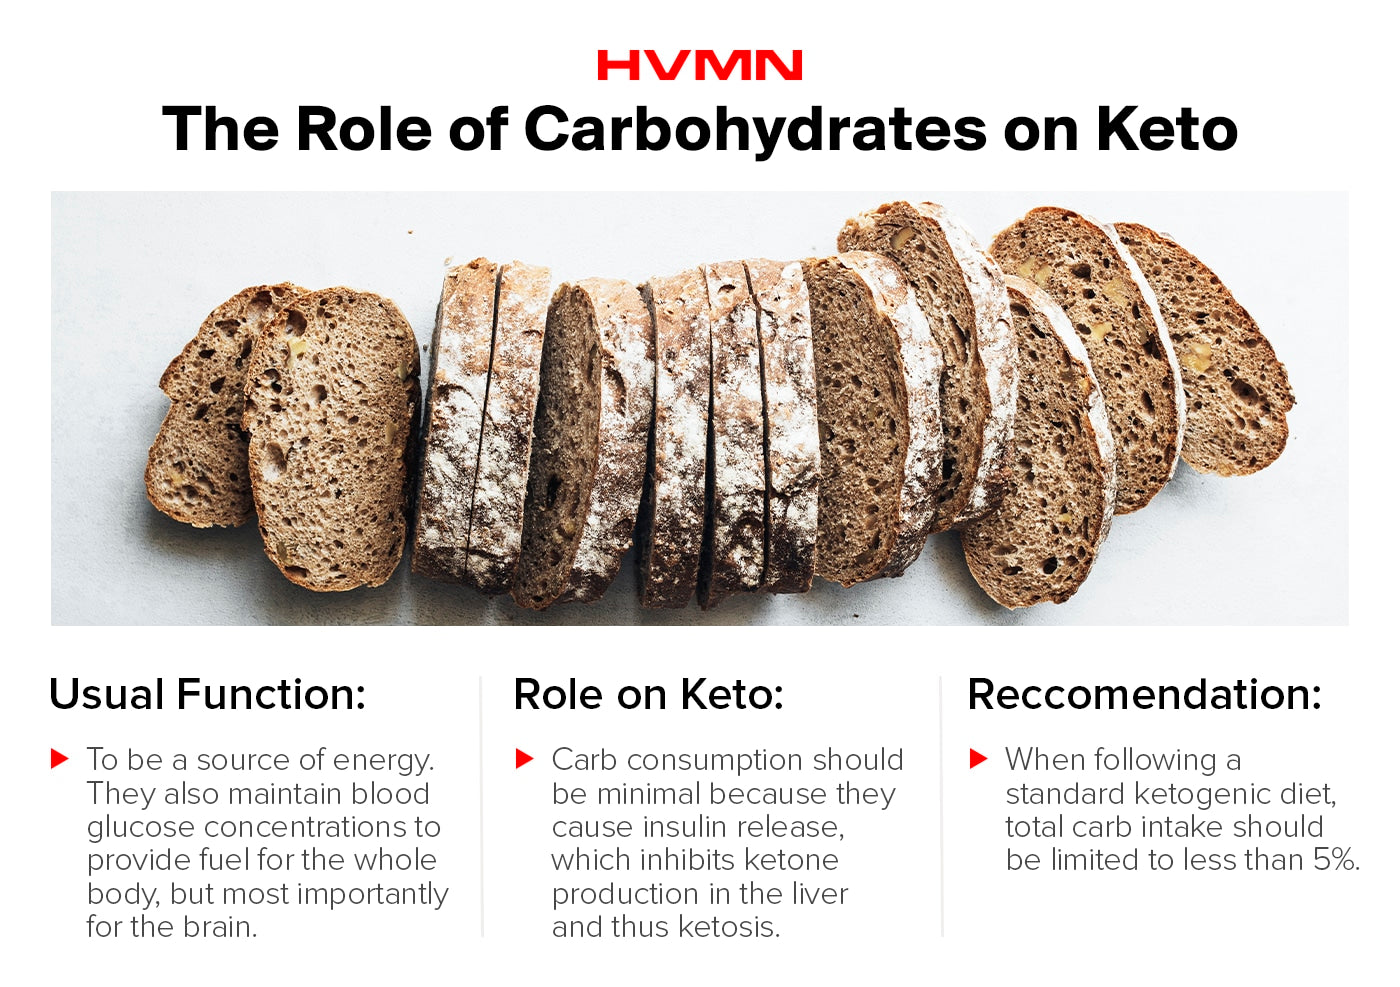 An image of sliced bread, showing the role of carbs on keto